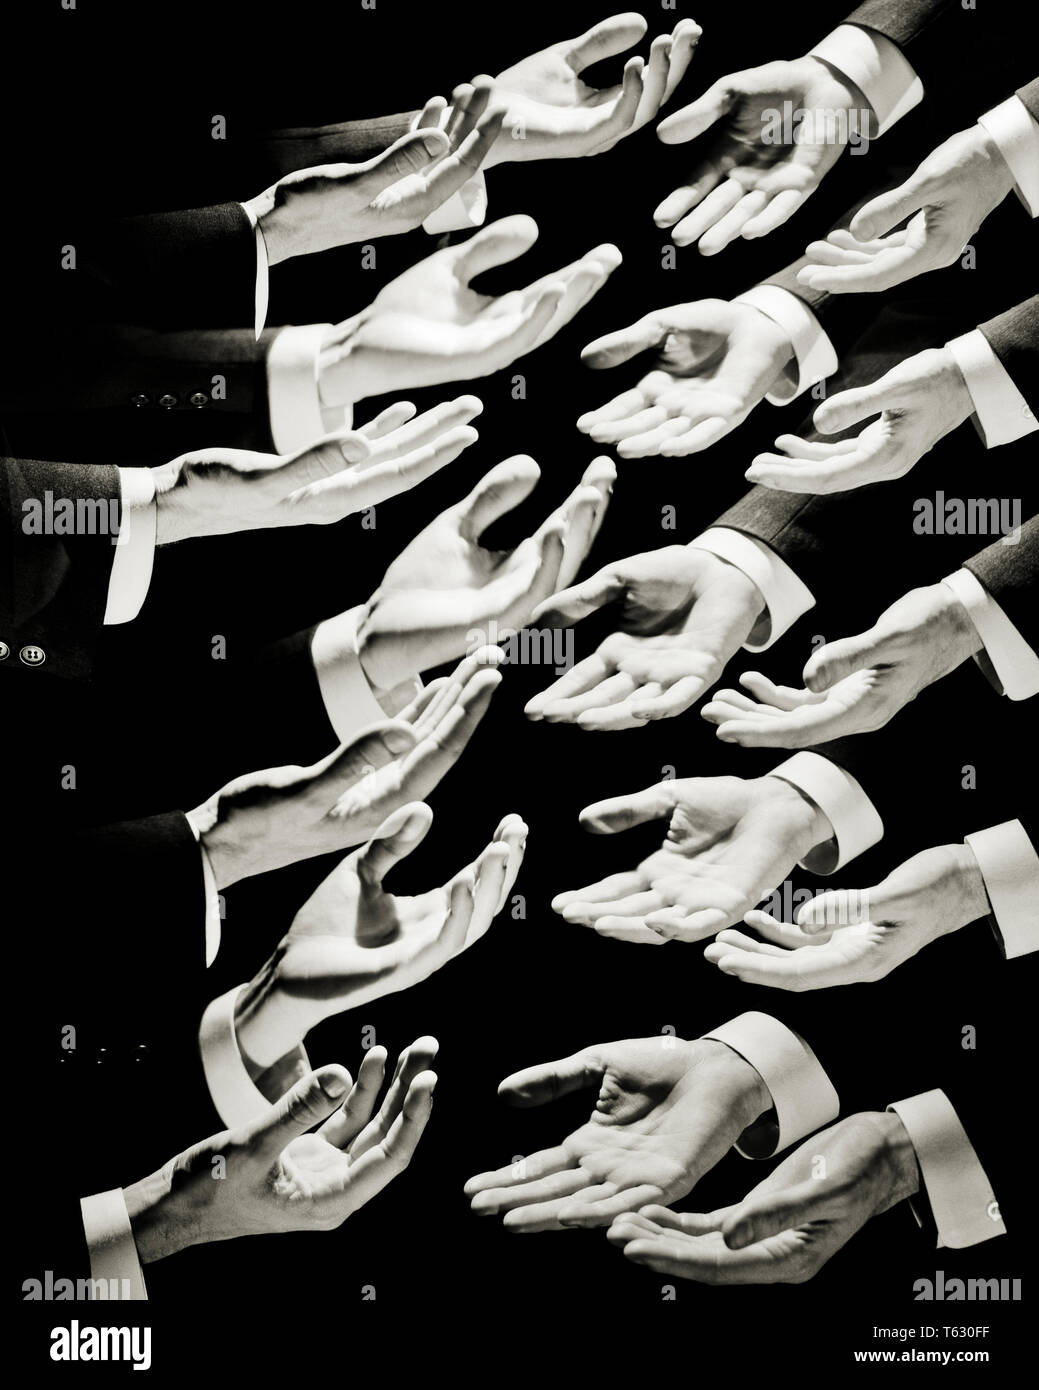 1960s SYMBOLIC COMPOSITE MONTAGE MULTIPLE EXPOSURE GRAPHIC EFFECT CONCEPT OF MANY BUSINESSMAN HANDS REACHING OUT IN SUPPLICATION - s14516 HAR001 HARS PAYMENT POLITICS CONCEPT CONCEPTUAL ESCAPE SUPPLICATION SYMBOLIC CONCEPTS BLACK AND WHITE CAUCASIAN ETHNICITY GRAPHIC EFFECT HANDS ONLY HAR001 OLD FASHIONED REPRESENTATION - Stock Image